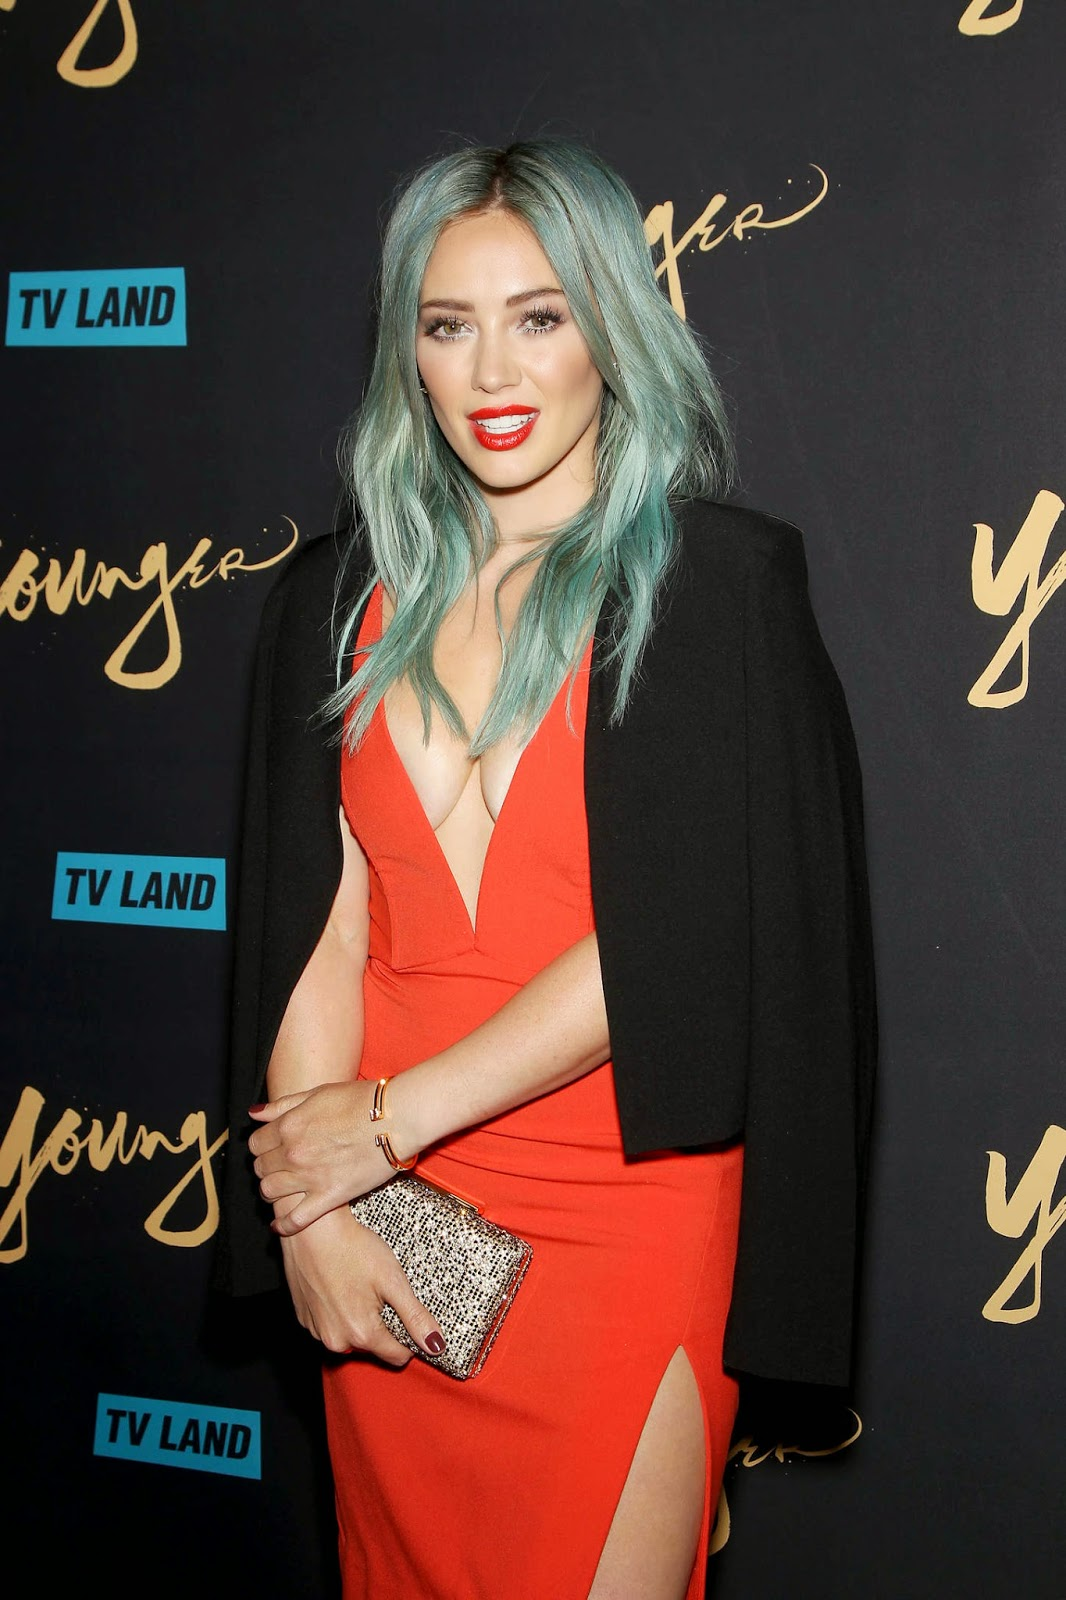 Hilary Duff bares cleavage in a low cut dress at the 'Younger' premiere in NYC